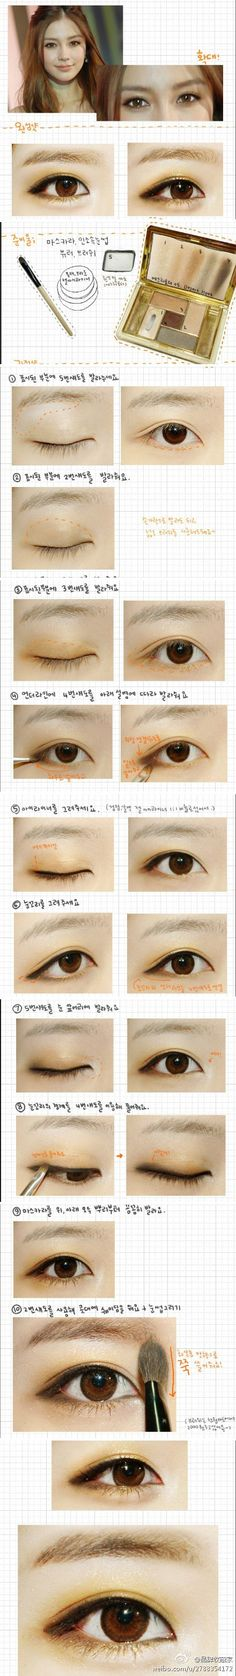 Korean Natural Eyebrow Tutorial by Liah Yoo - Korean Makeup Asian Makeup Looks, Asian Eye Makeup, Eyebrow Makeup, Asian Make Up, Korean Make Up, Ulzzang Makeup, Korean Makeup Tutorials, Asian Eyes, Makeup Trends